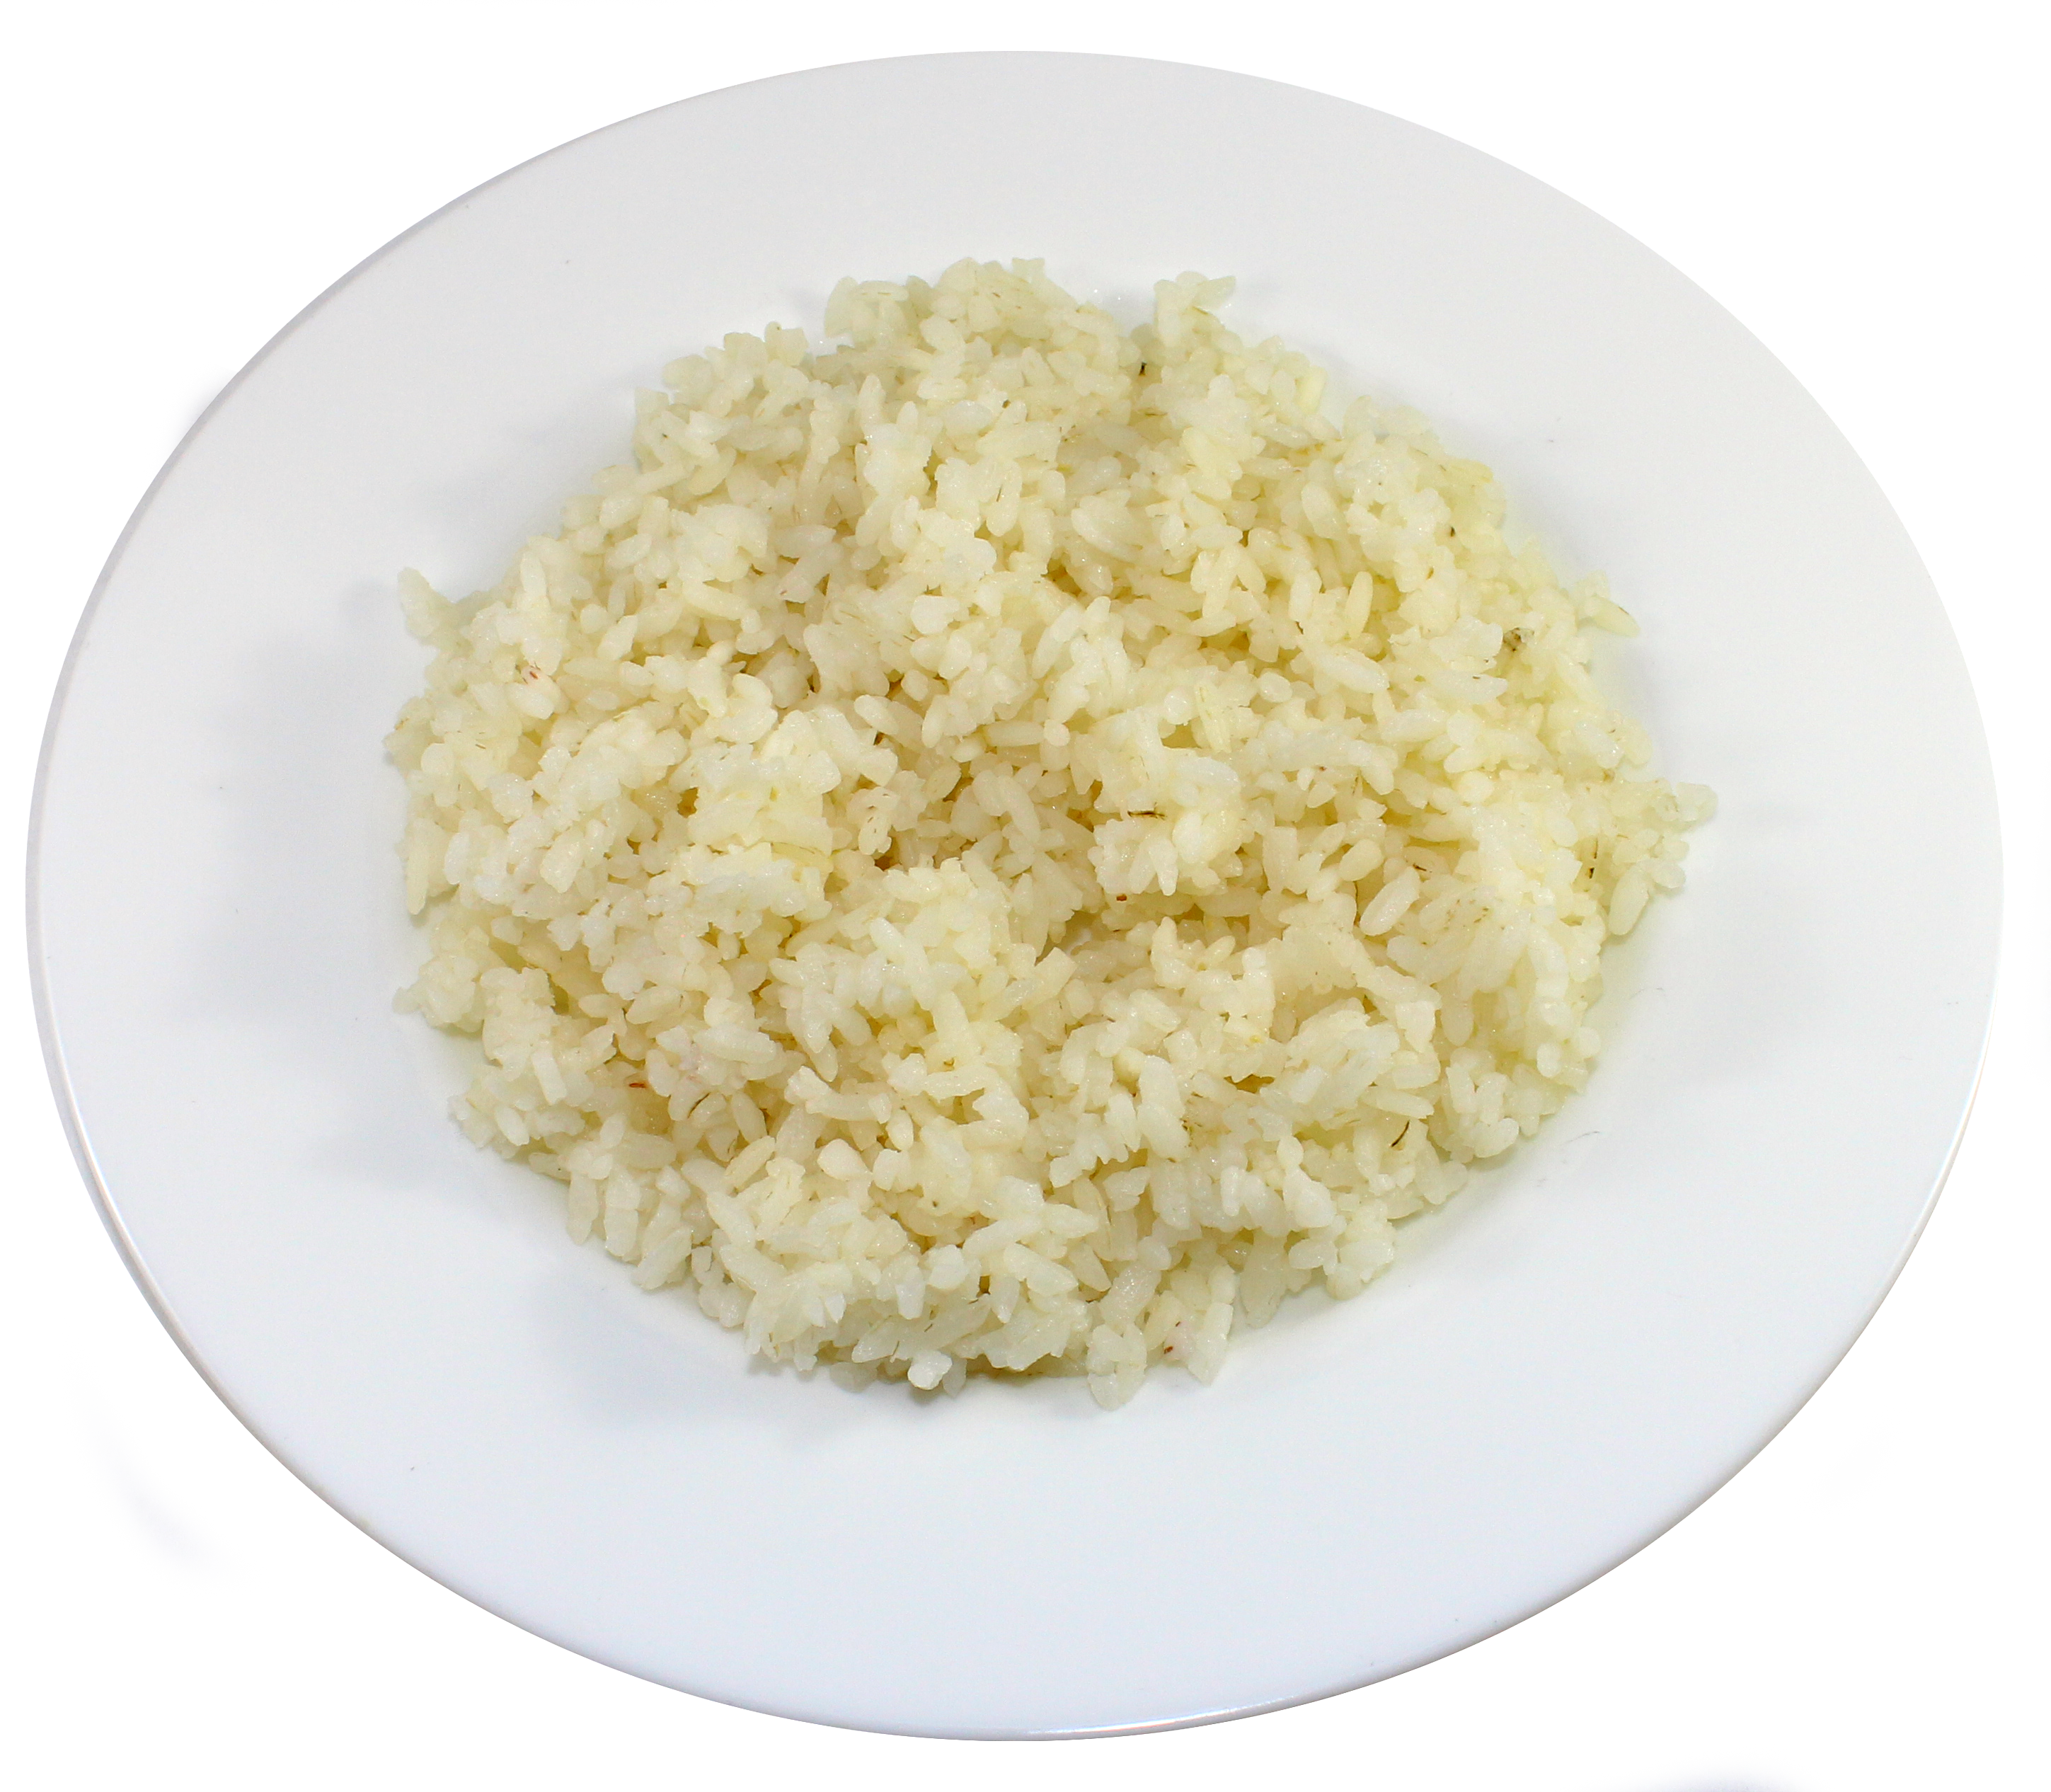 Png images free download. Rice clipart rice seed